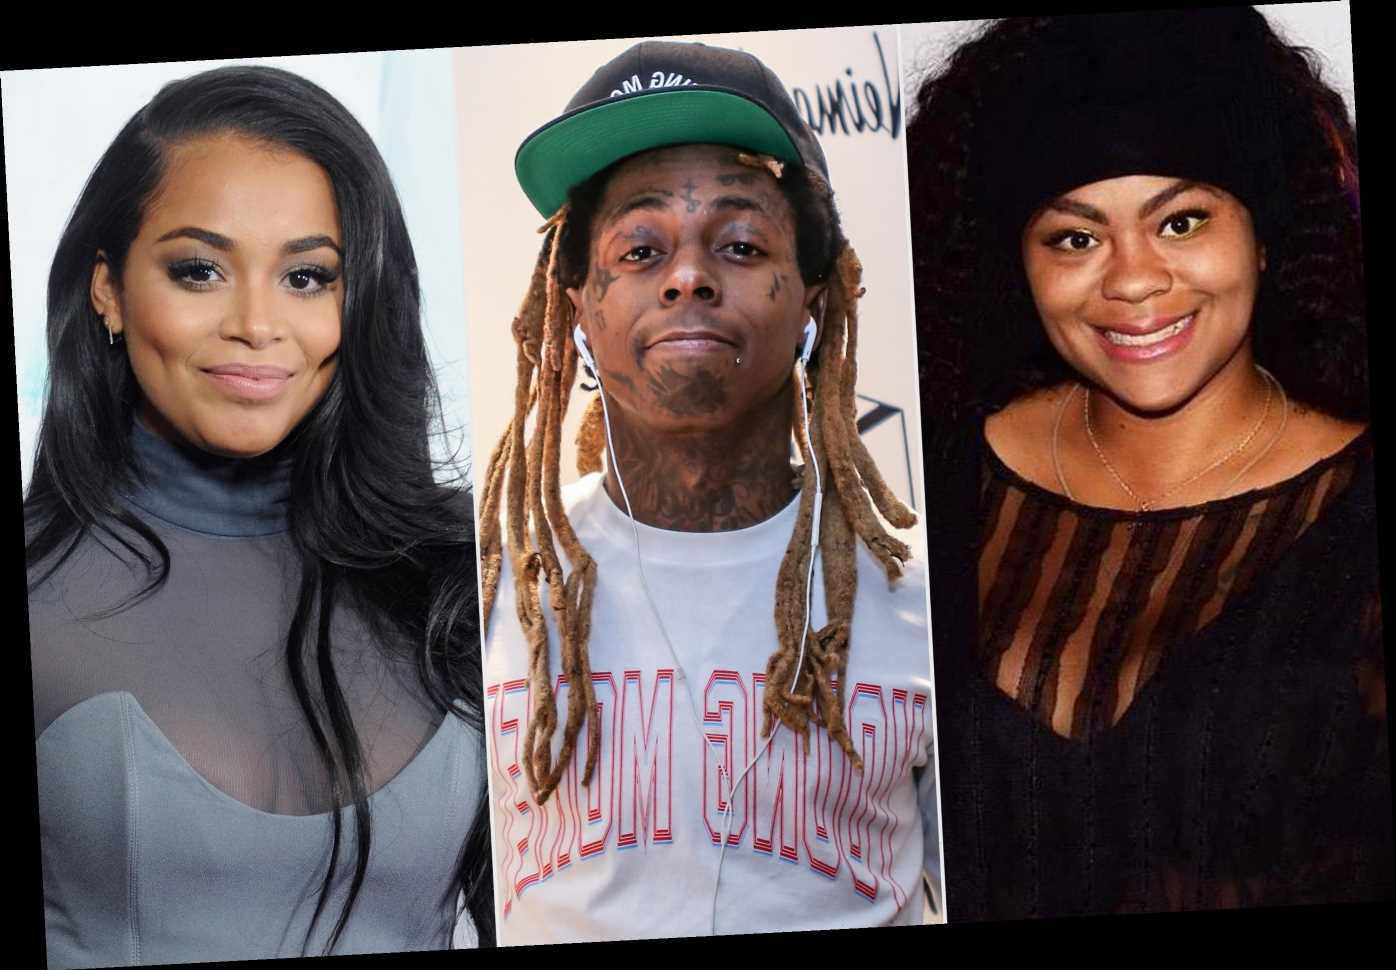 Singer Nivea Says She and Lauren London Became 'Very Close' While Both Pregnant By Lil Wayne